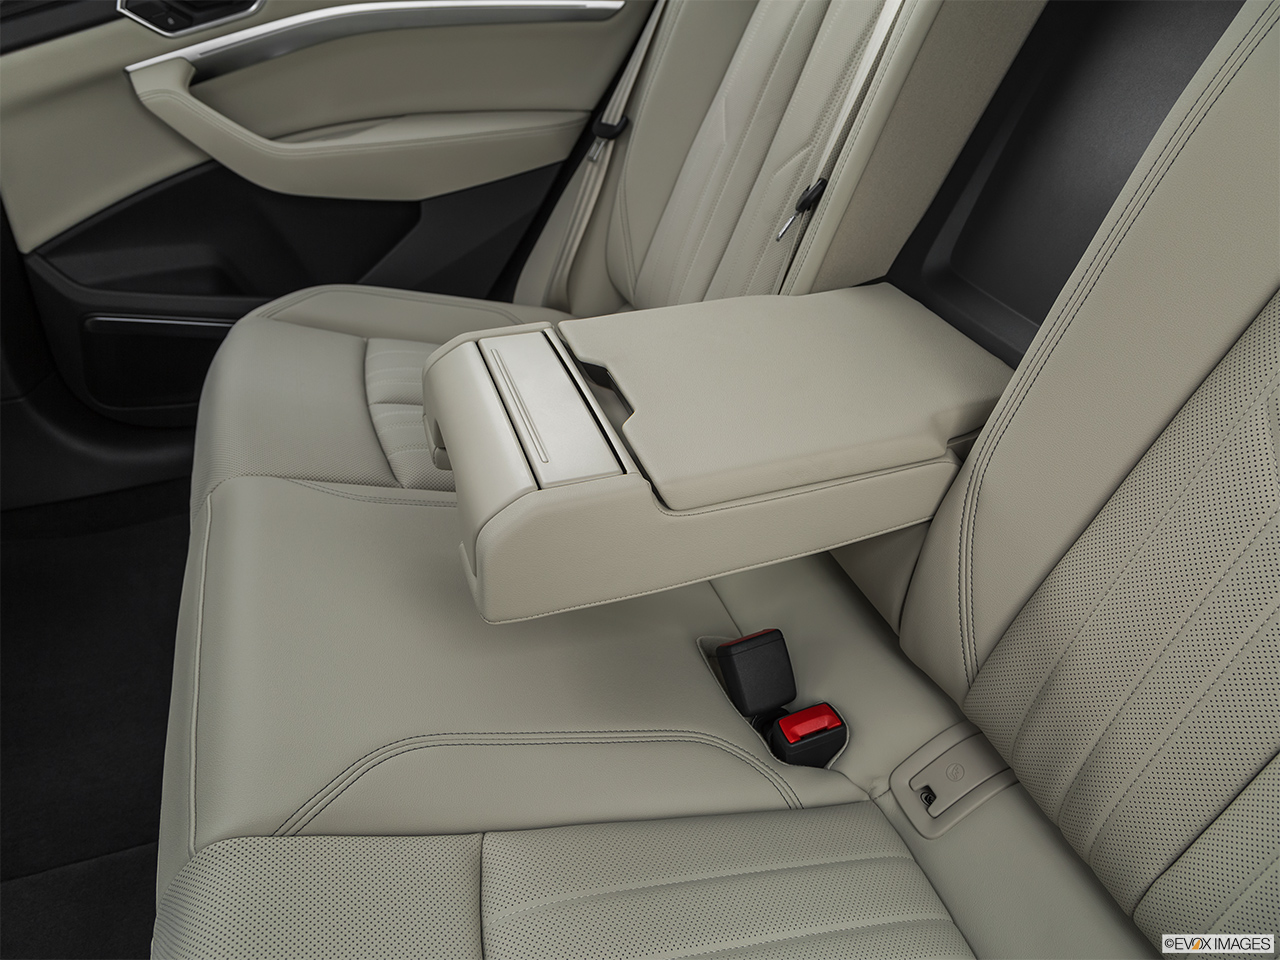 2019 Audi e-tron Premium Plus Rear center console with closed lid from driver's side looking down.